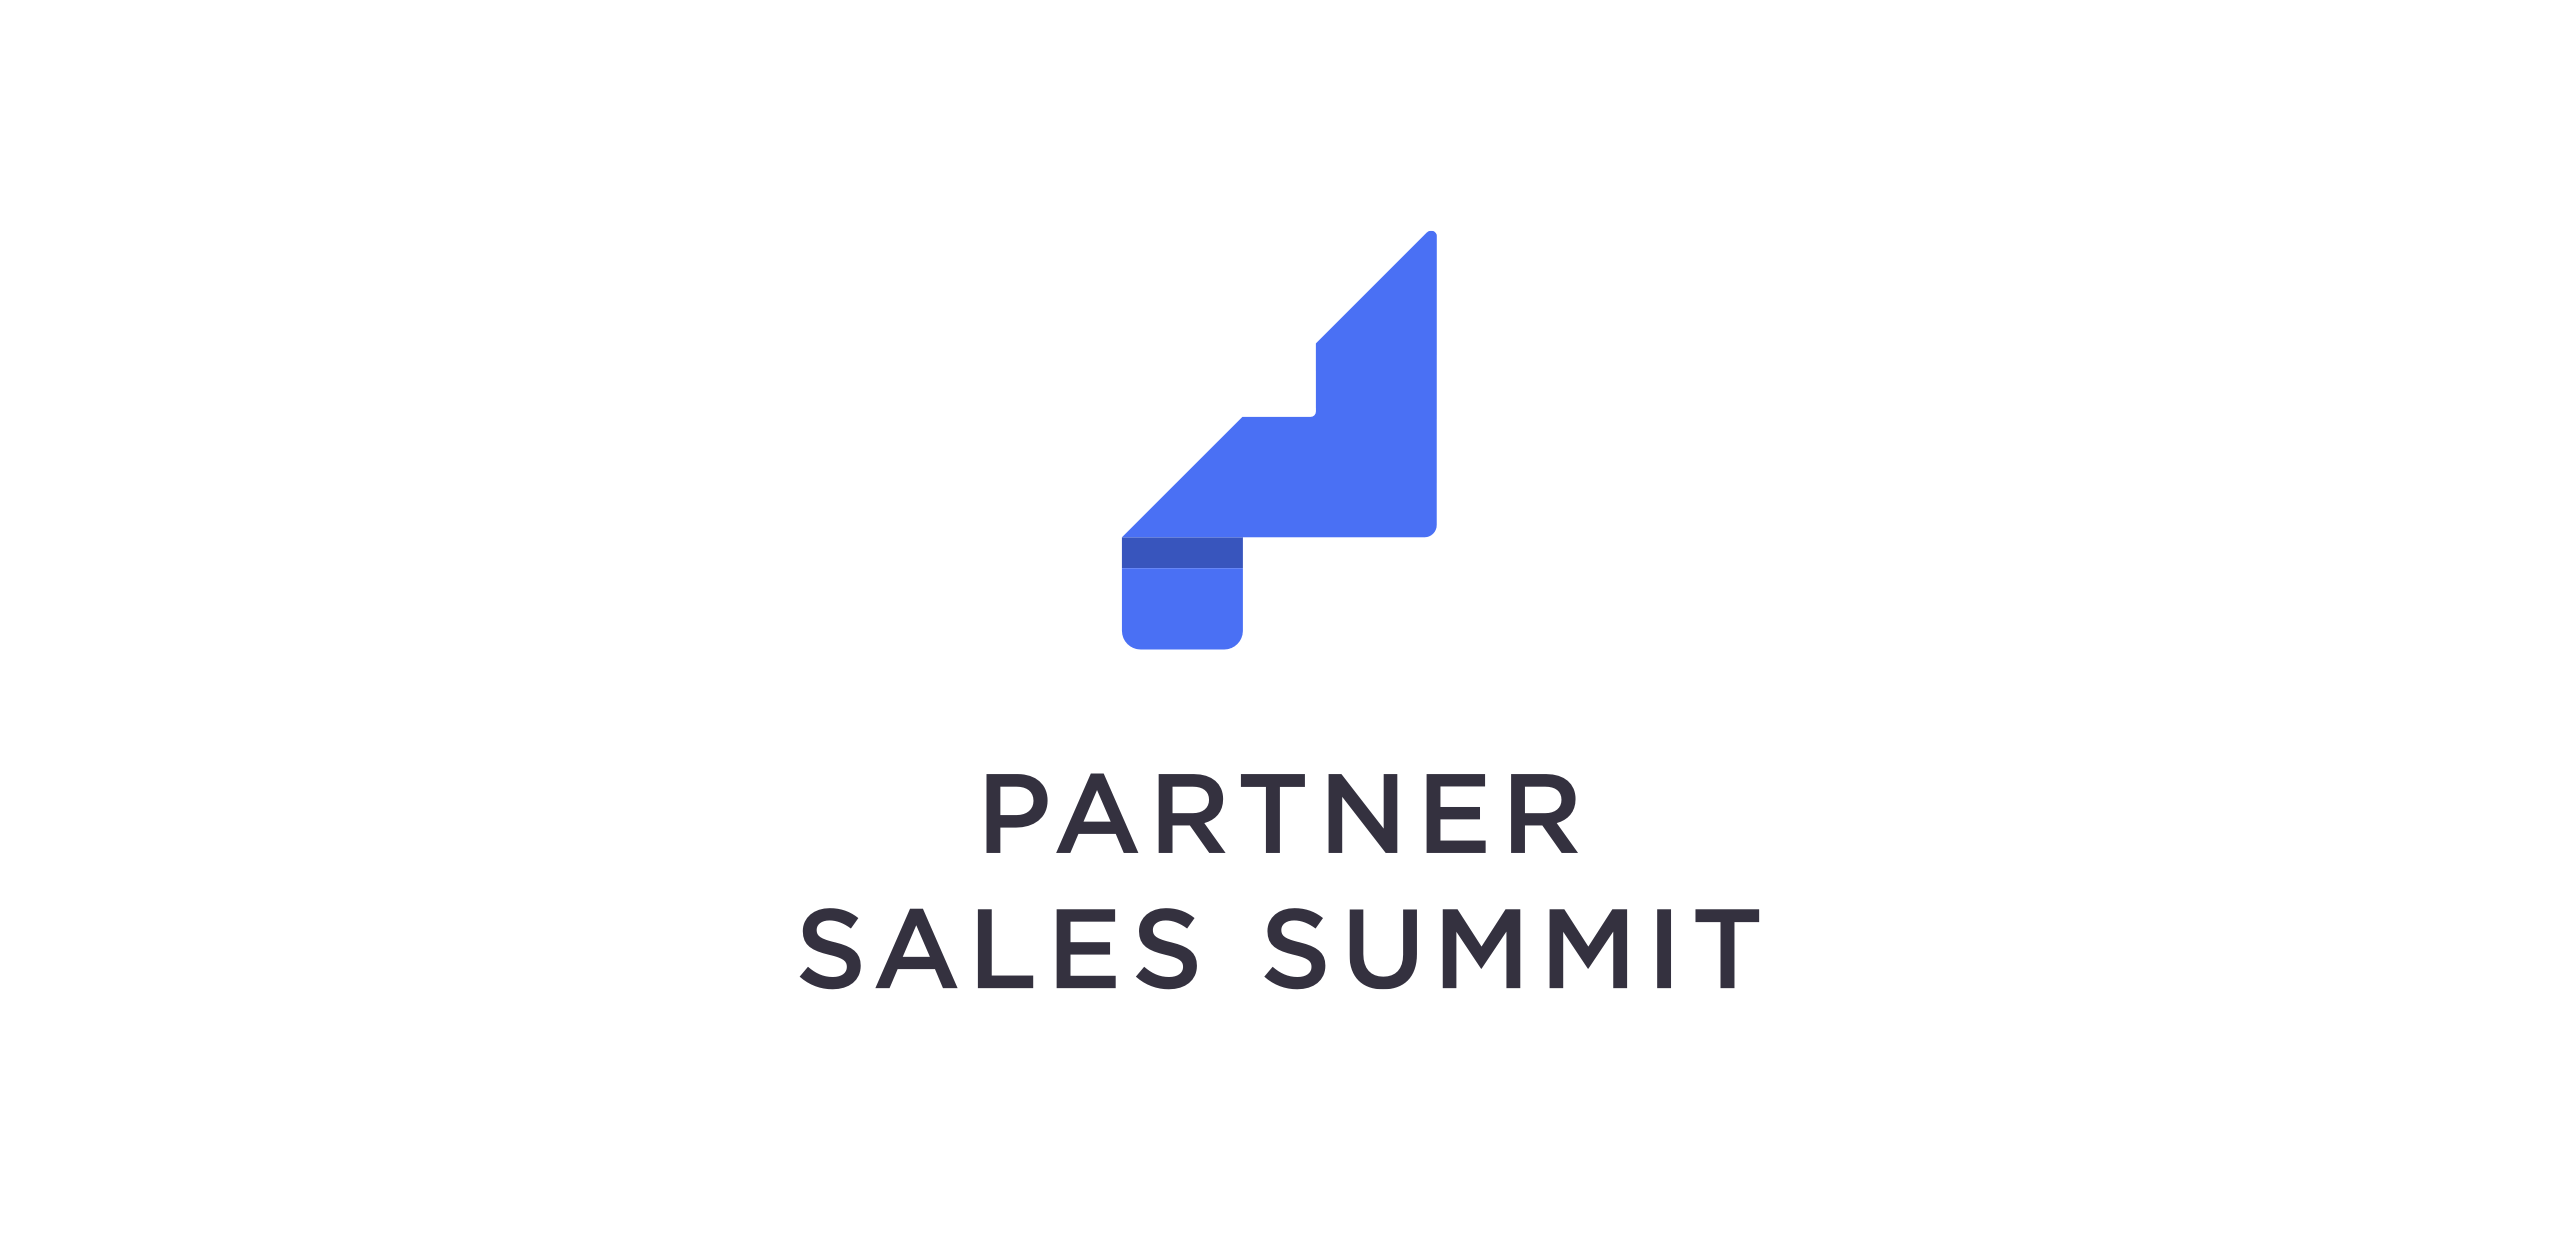 partner sales summit logo